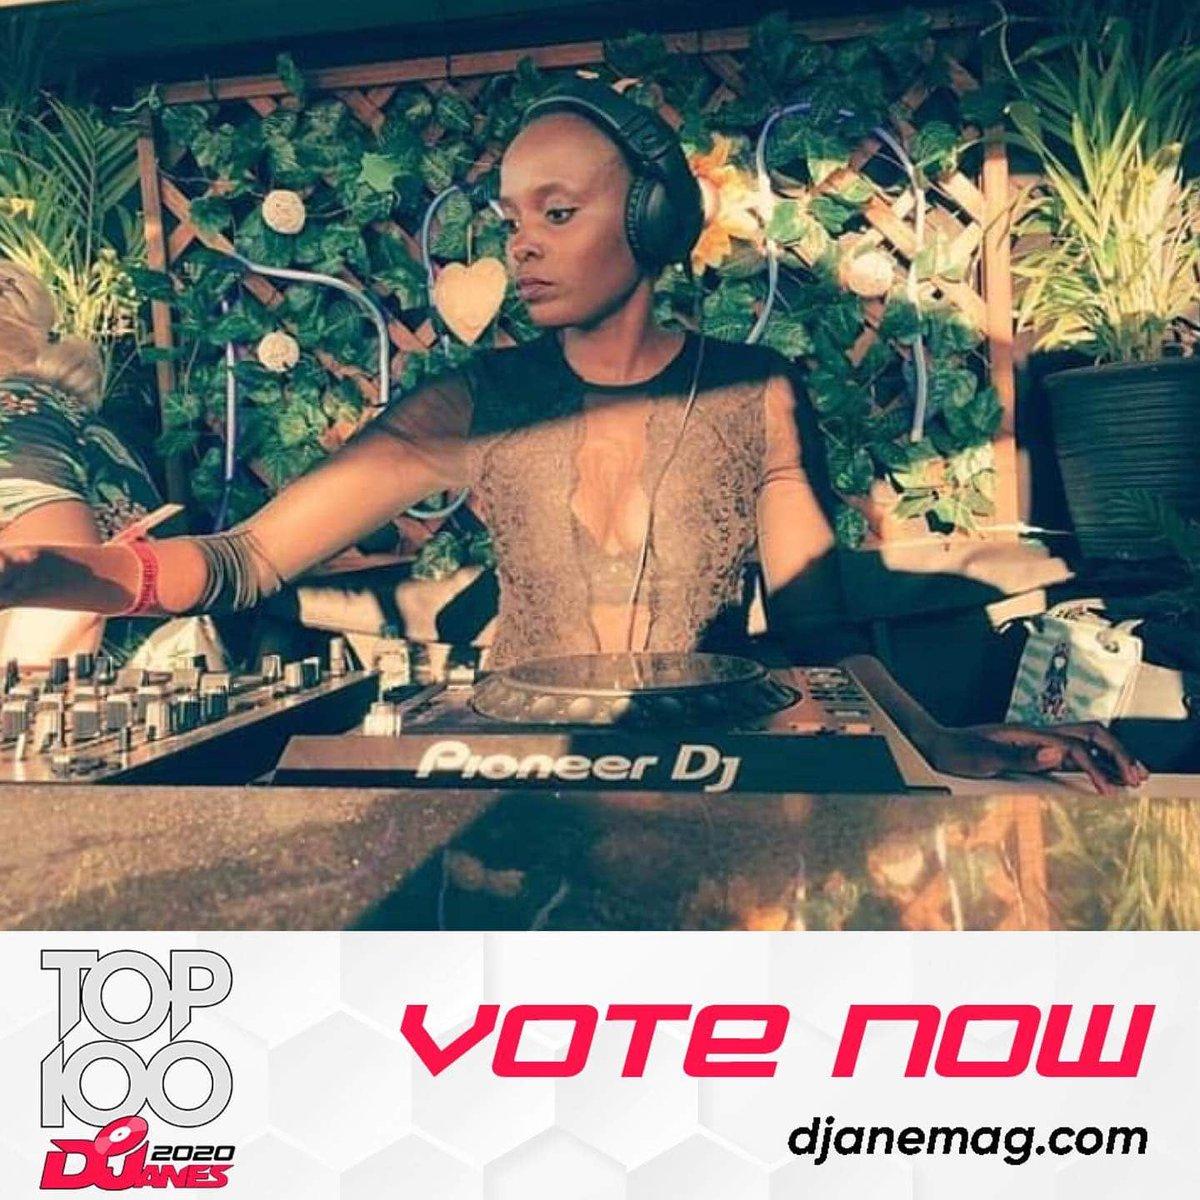 The virus will go away , Music will stay forever , vote for @ZanyDeep , Top 100 DJs on http://djanemag.com @djanemag @Top100Djanes #zanydeep ,#ddjt ,#housemusic , #djs ,#femaledjpic.twitter.com/hmY6y1DeVv